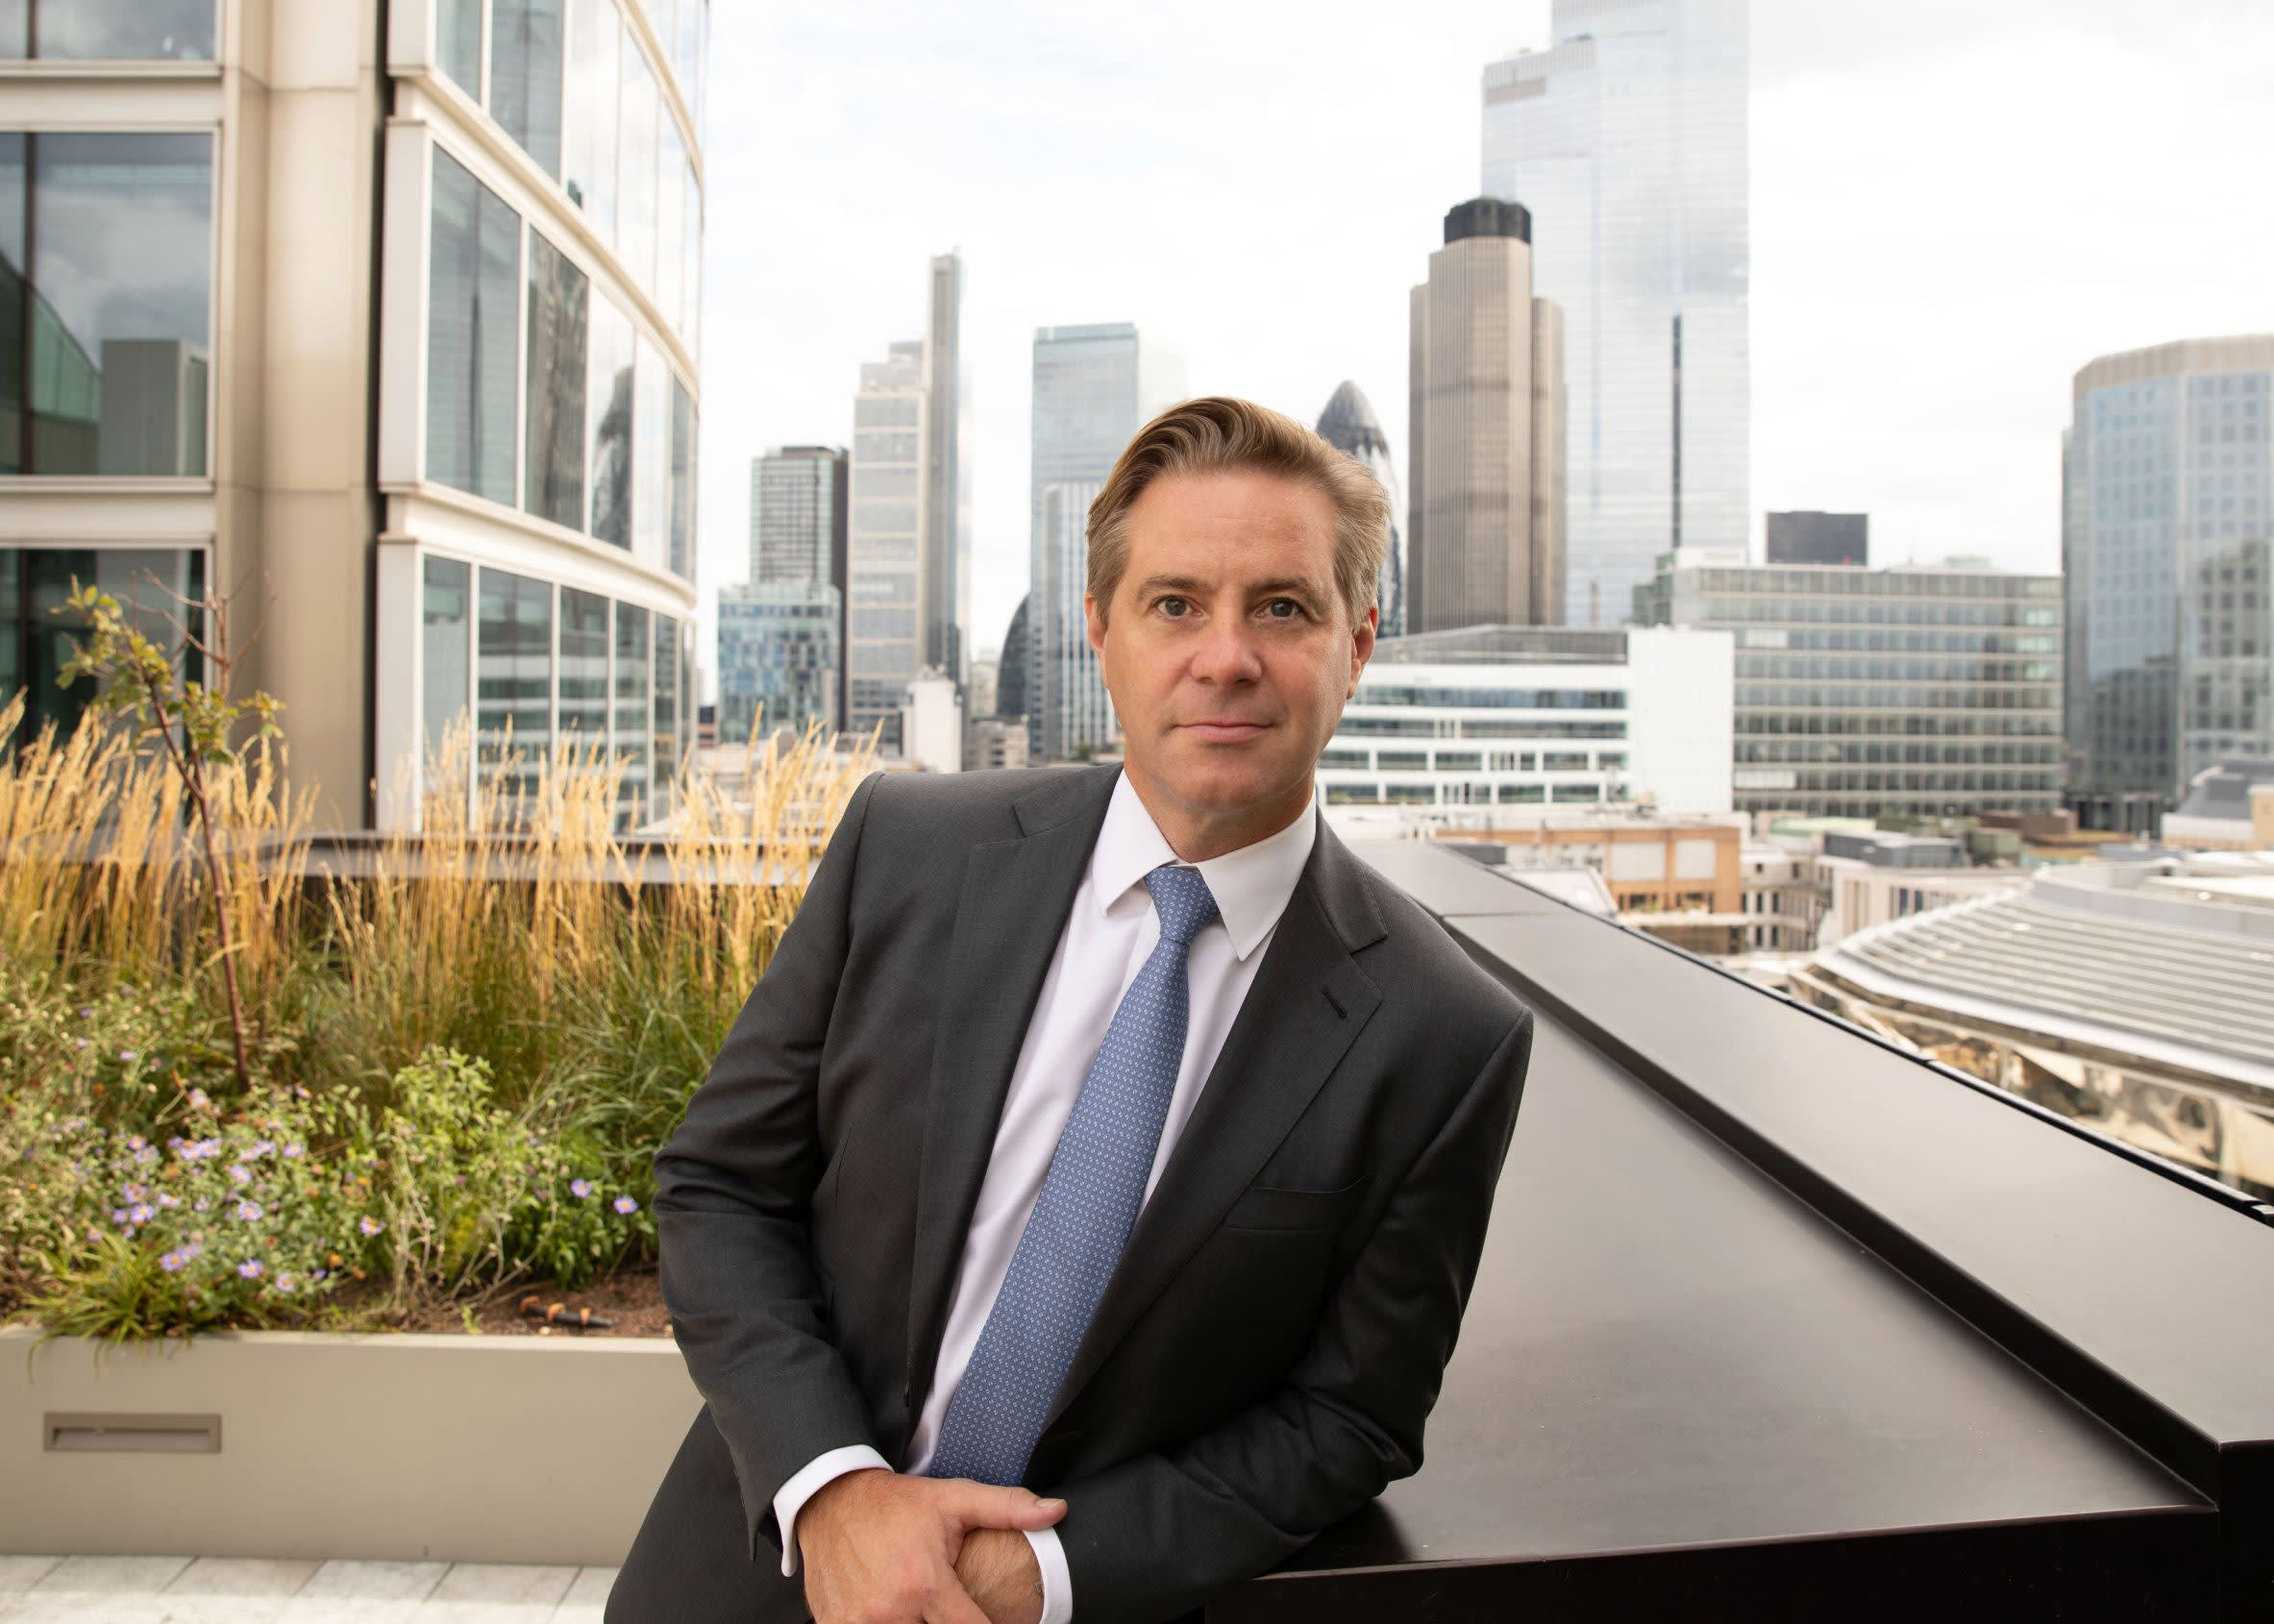 SPW boss: 'I have a record of growing businesses'